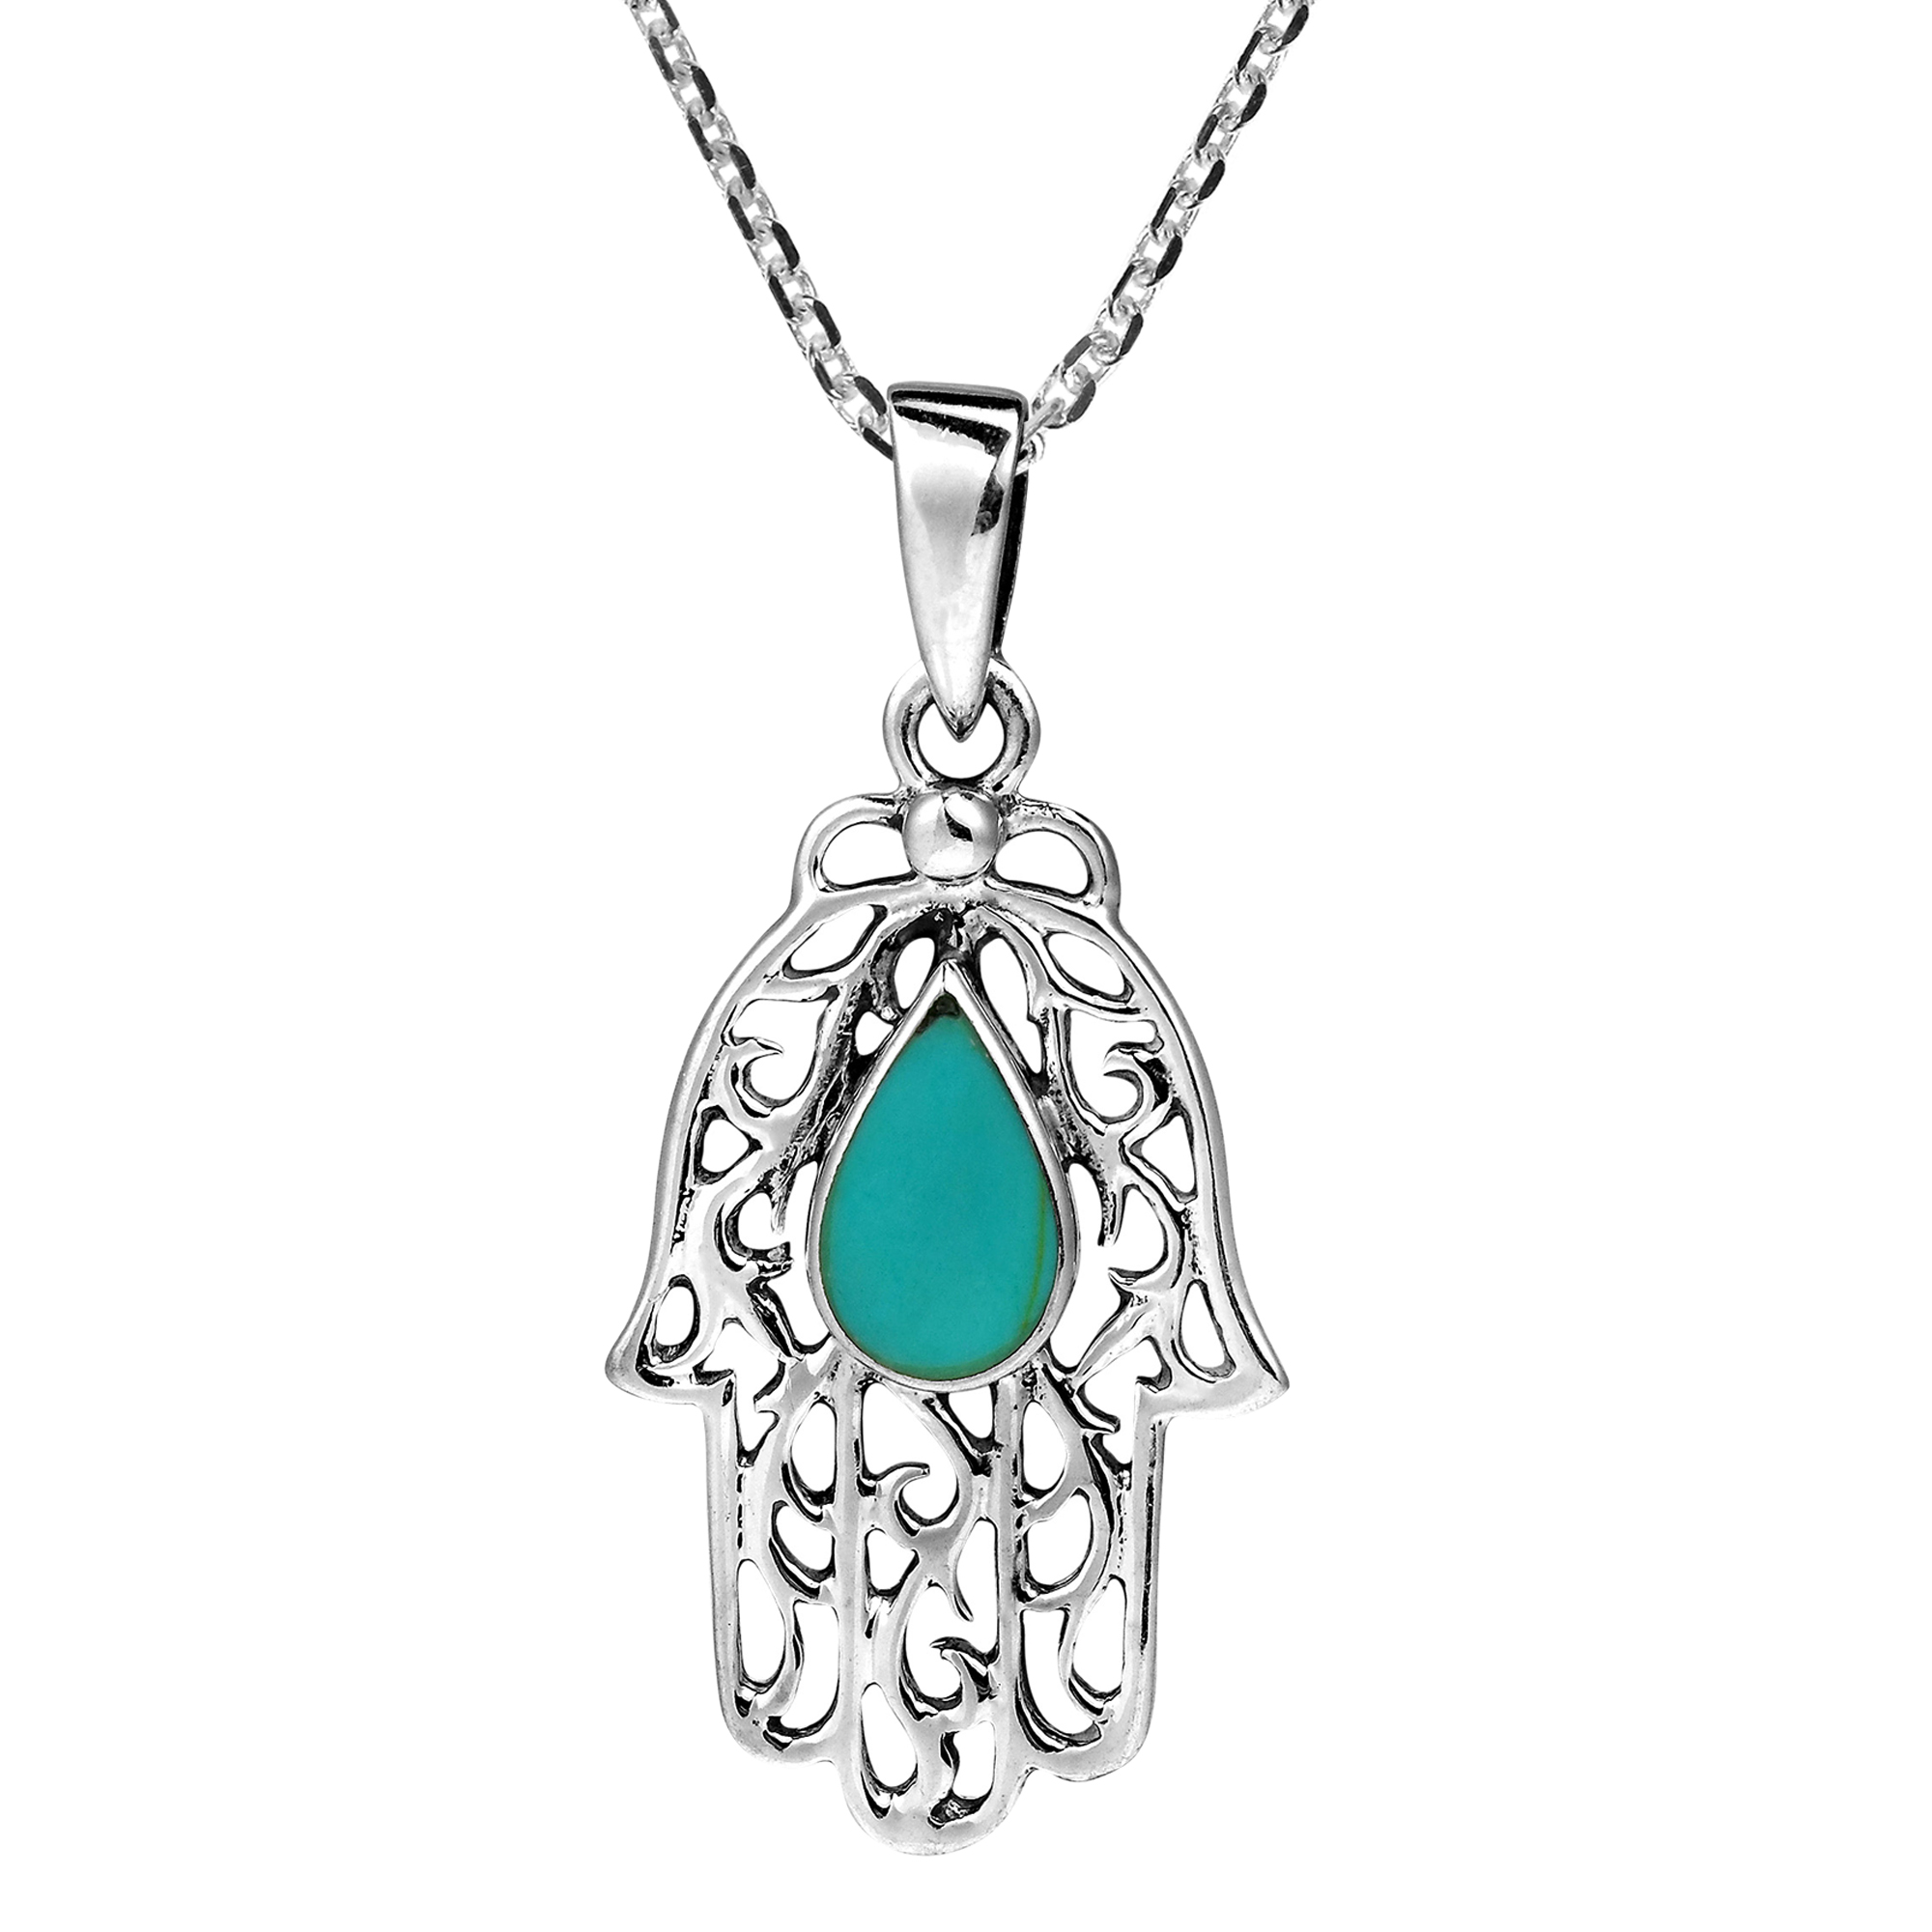 Jewish hamsa hand teardrop sterling silver necklace aeravida the hamsa is an ancient symbol that depicts an open right hand and represents the hand of god in all faiths the hamsa is recognized as a protective buycottarizona Gallery